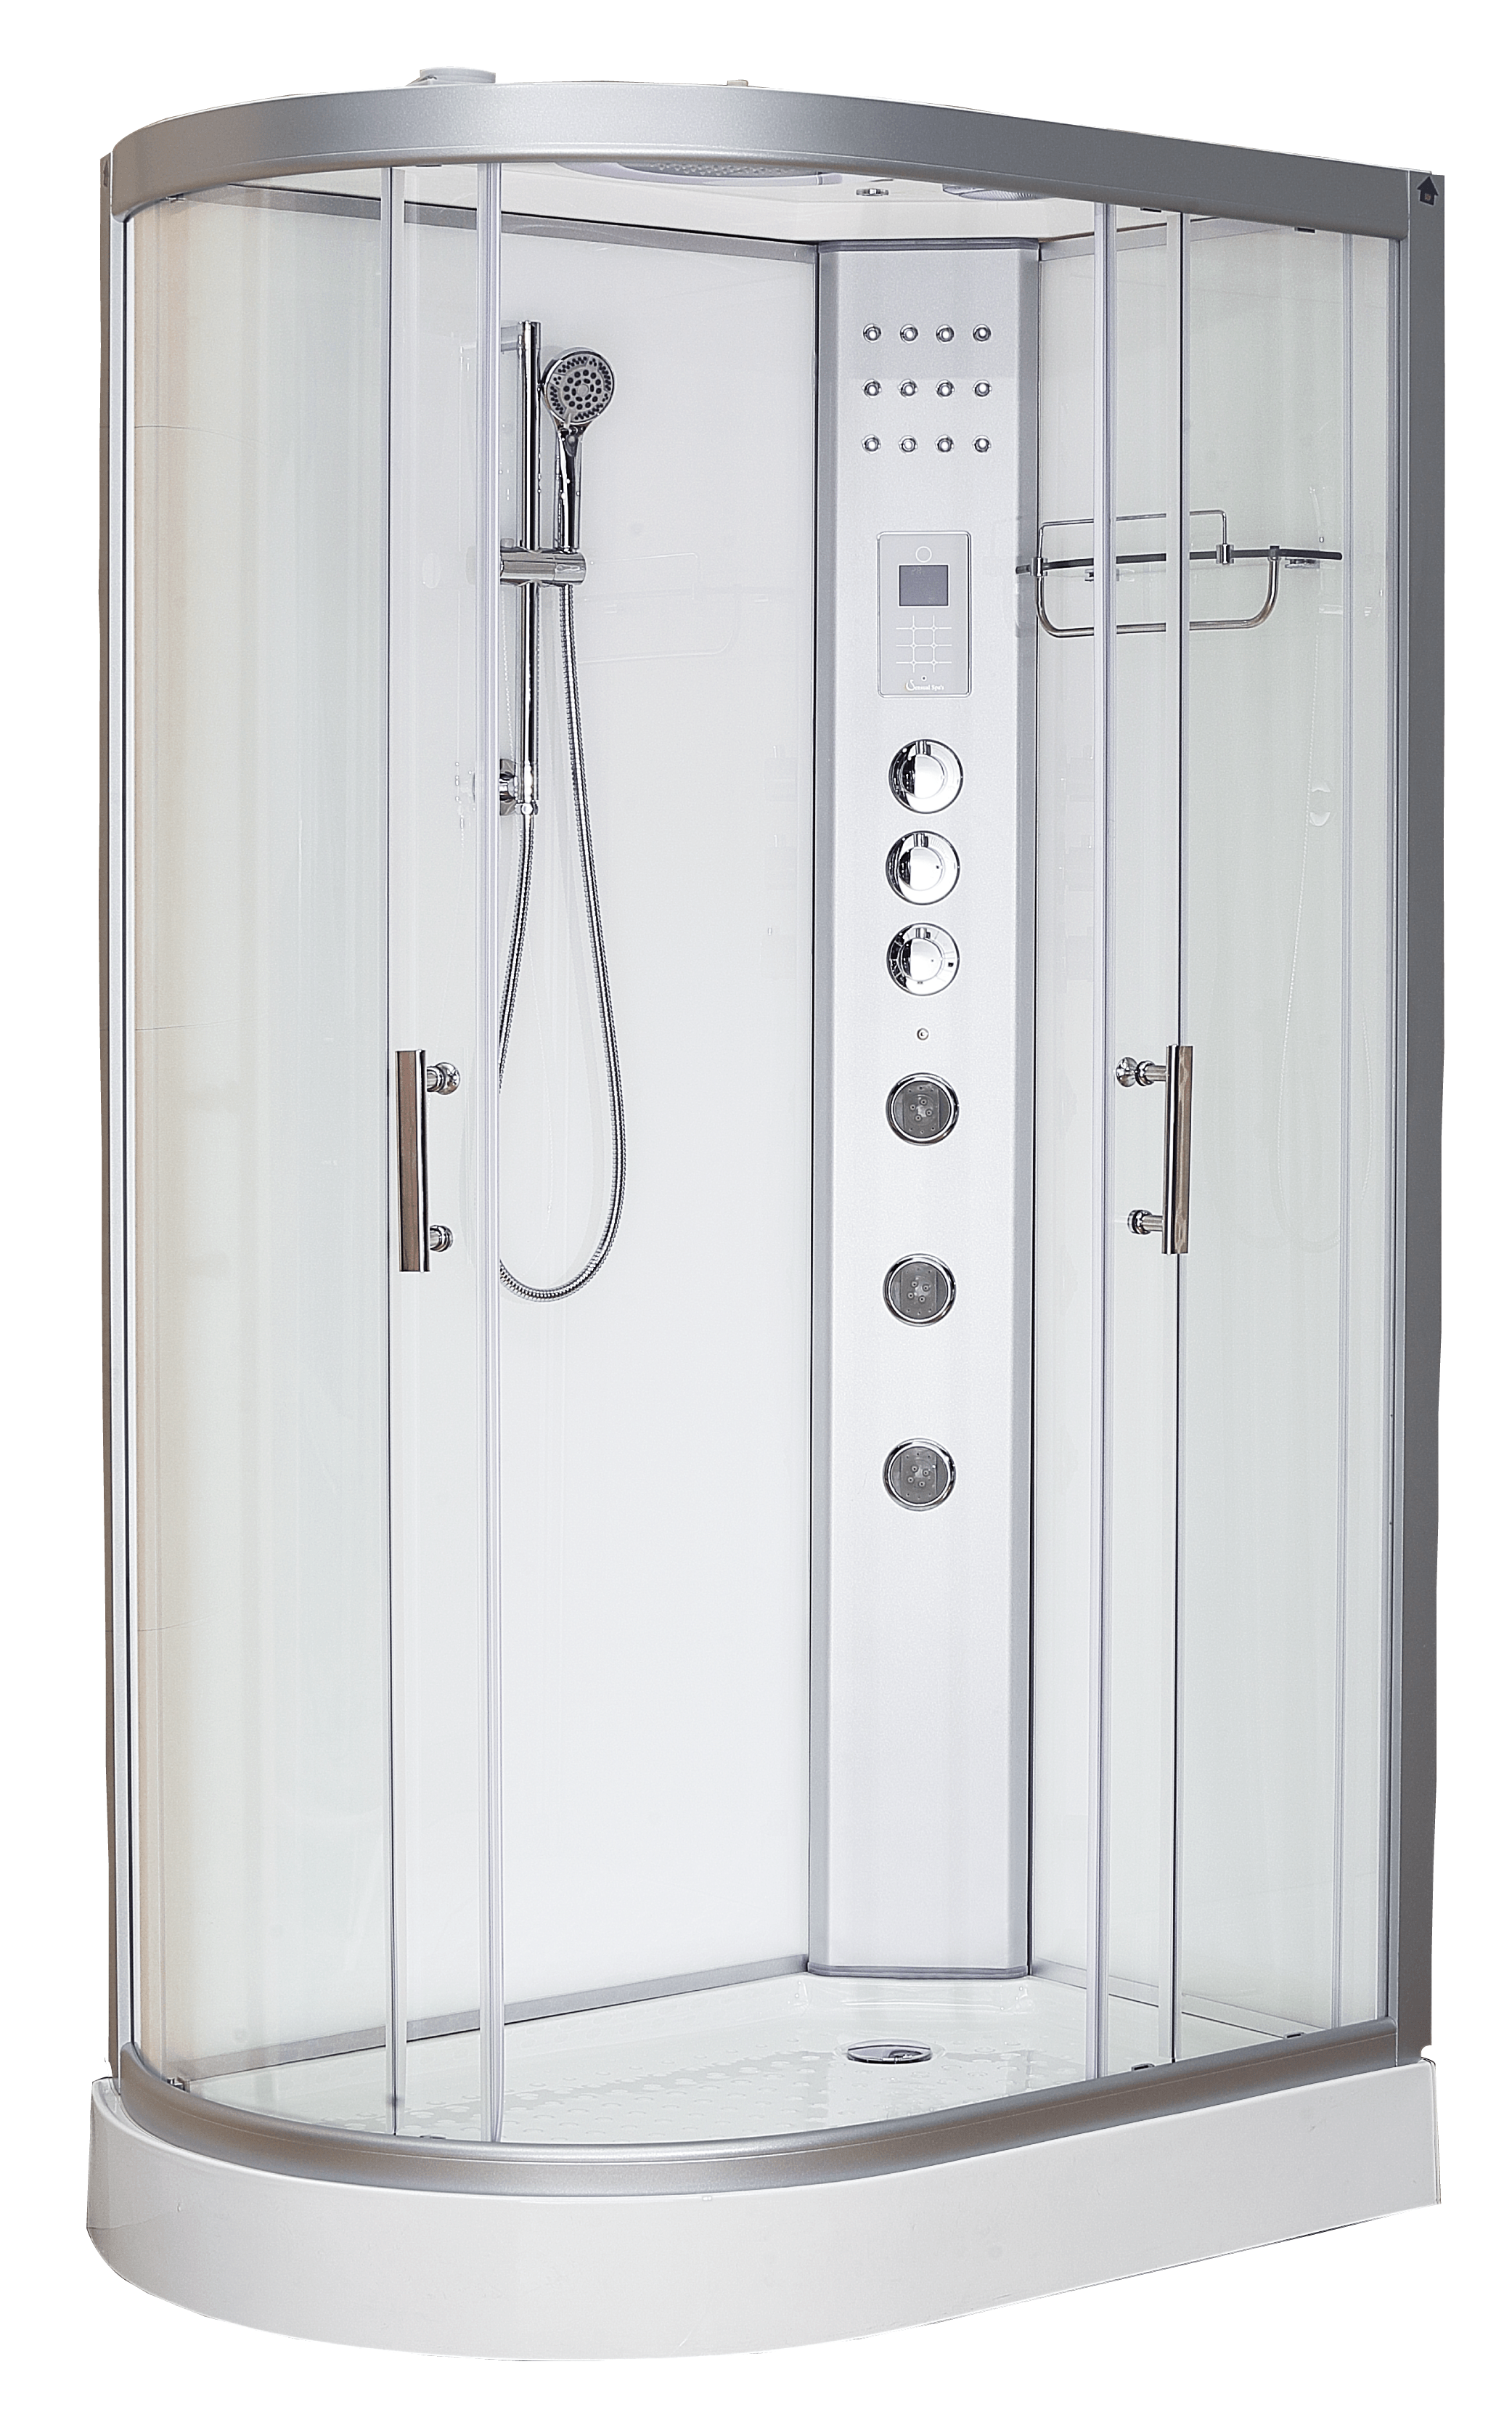 Shower Cabins & Cubicles | Best Prices at August 2018 | Smart Price